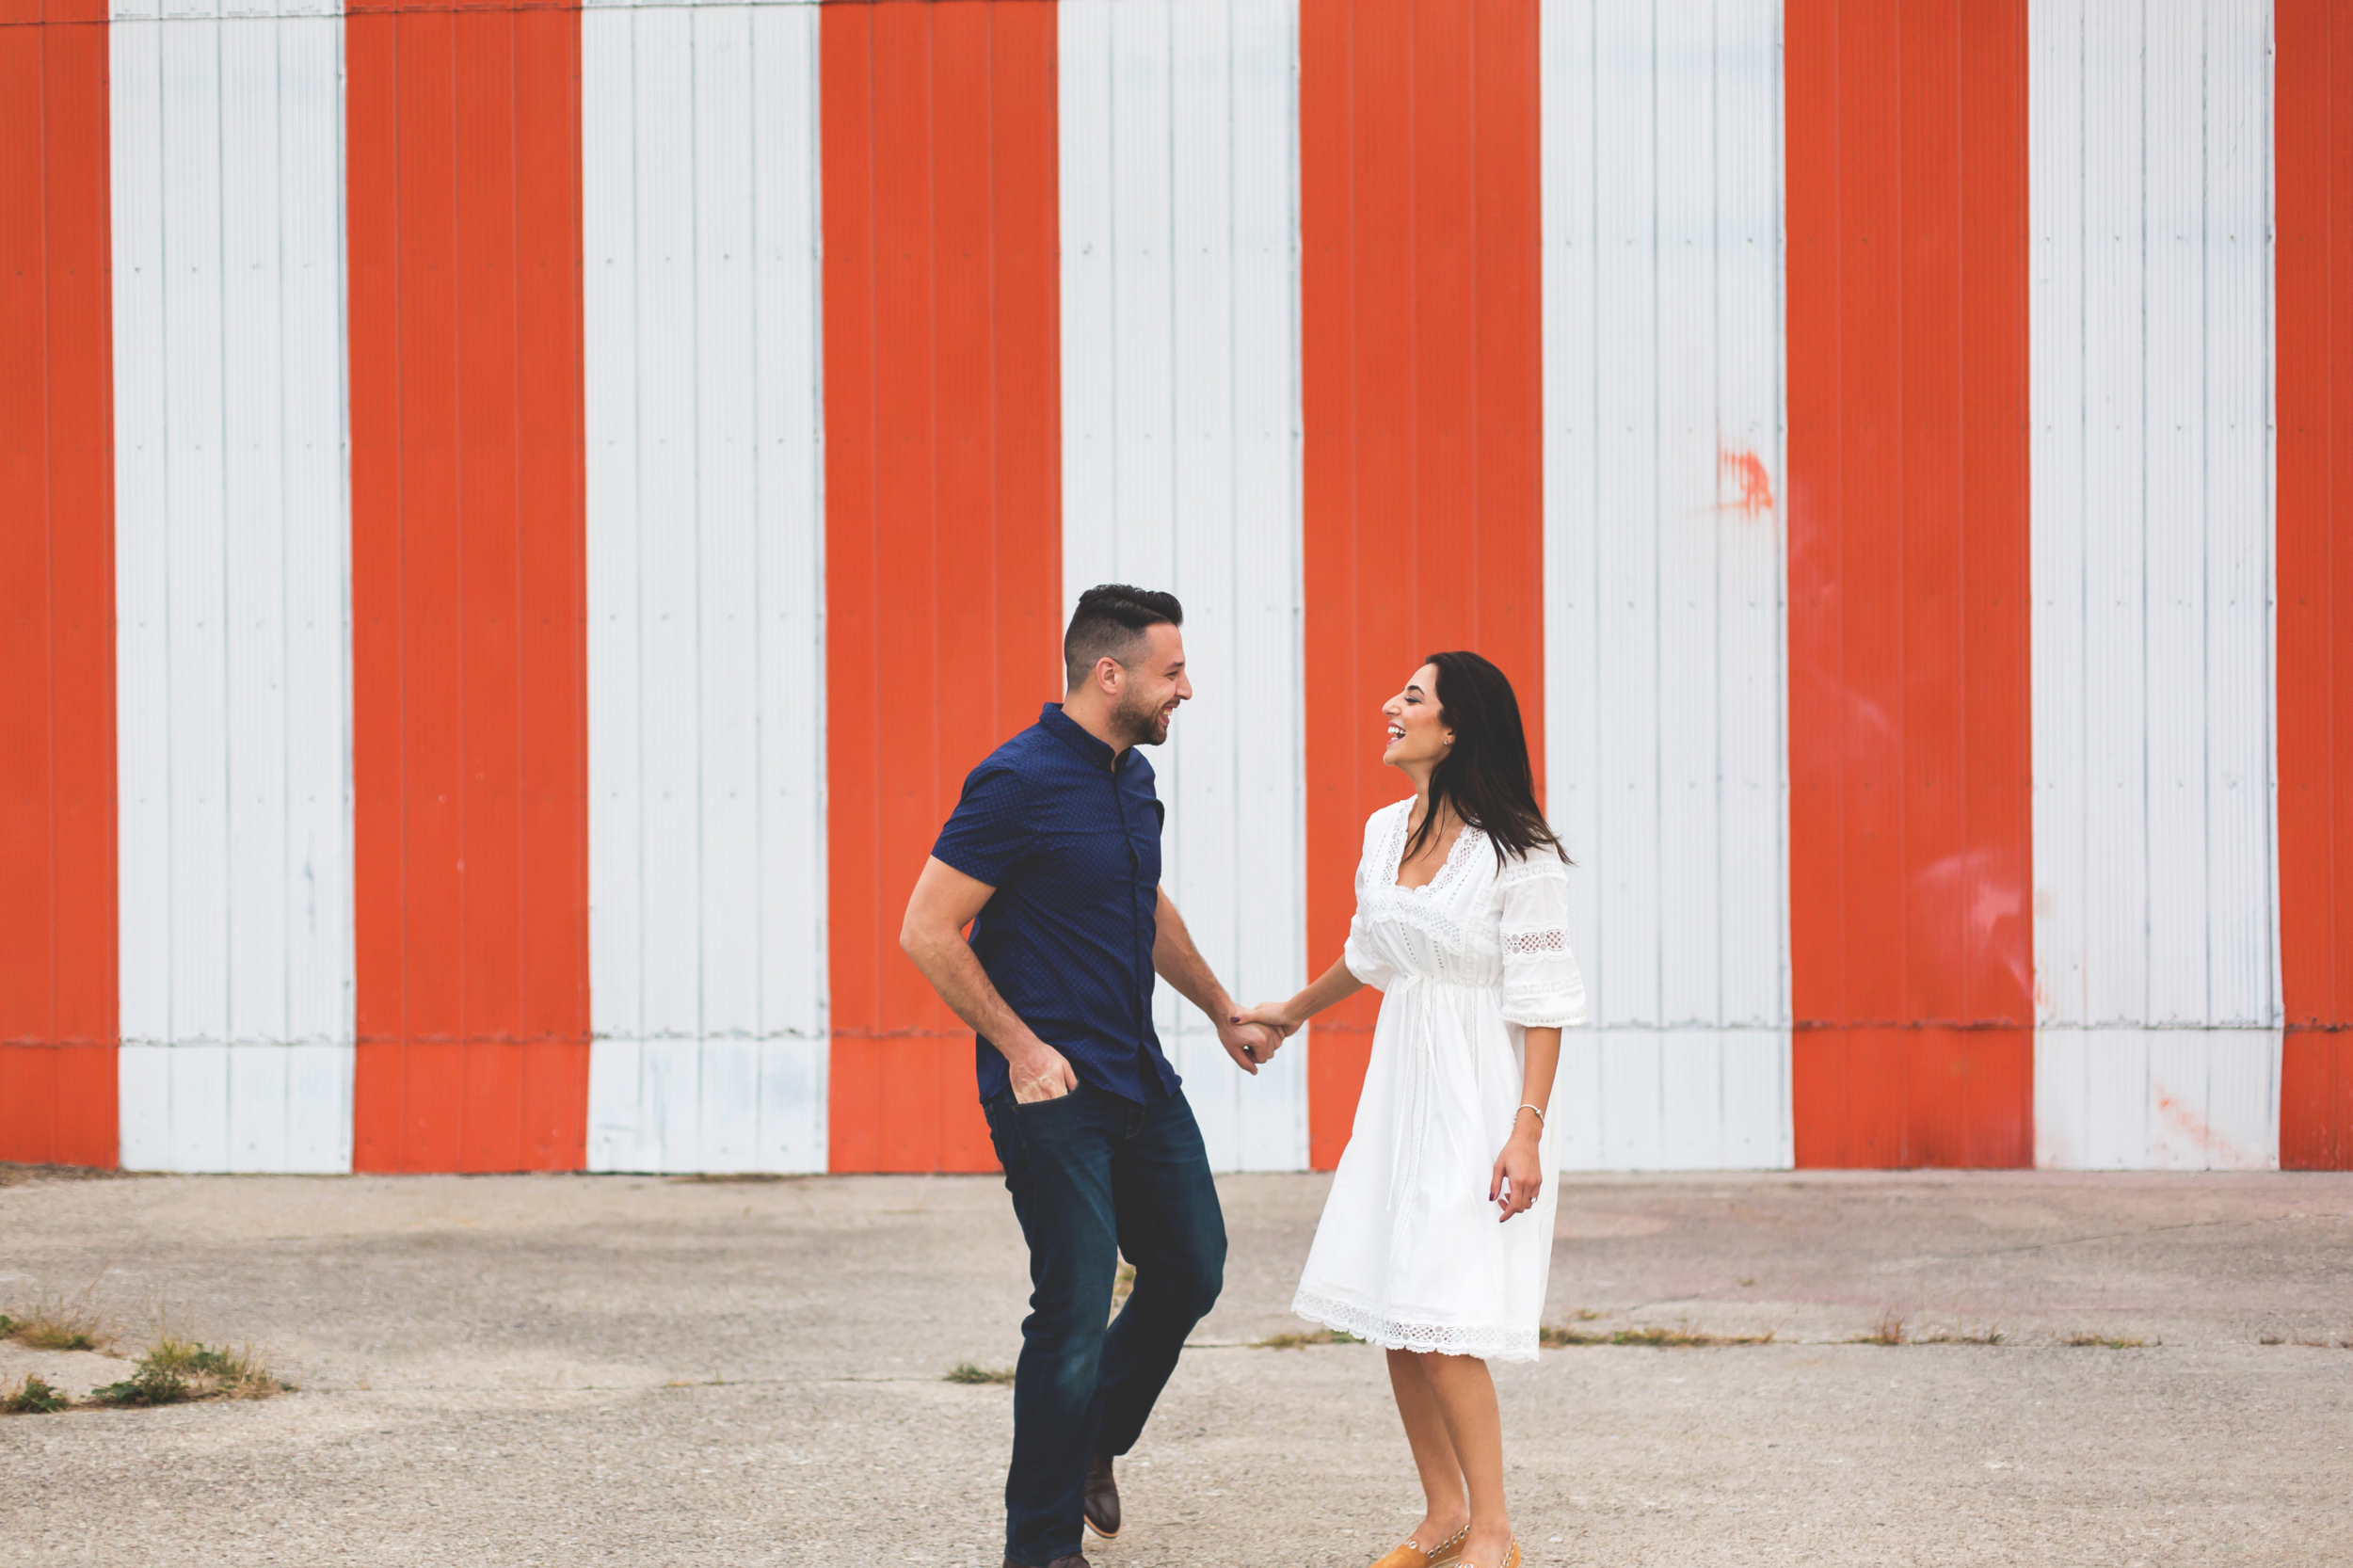 Engagement-Session-Hamilton-Burlington-Oakville-Toronto-Niagara-Wedding-Photographer-Engaged-Photography-Brantford-Airport-HamOnt-Engaged-Moments-by-Lauren-Photo-Image-19.png